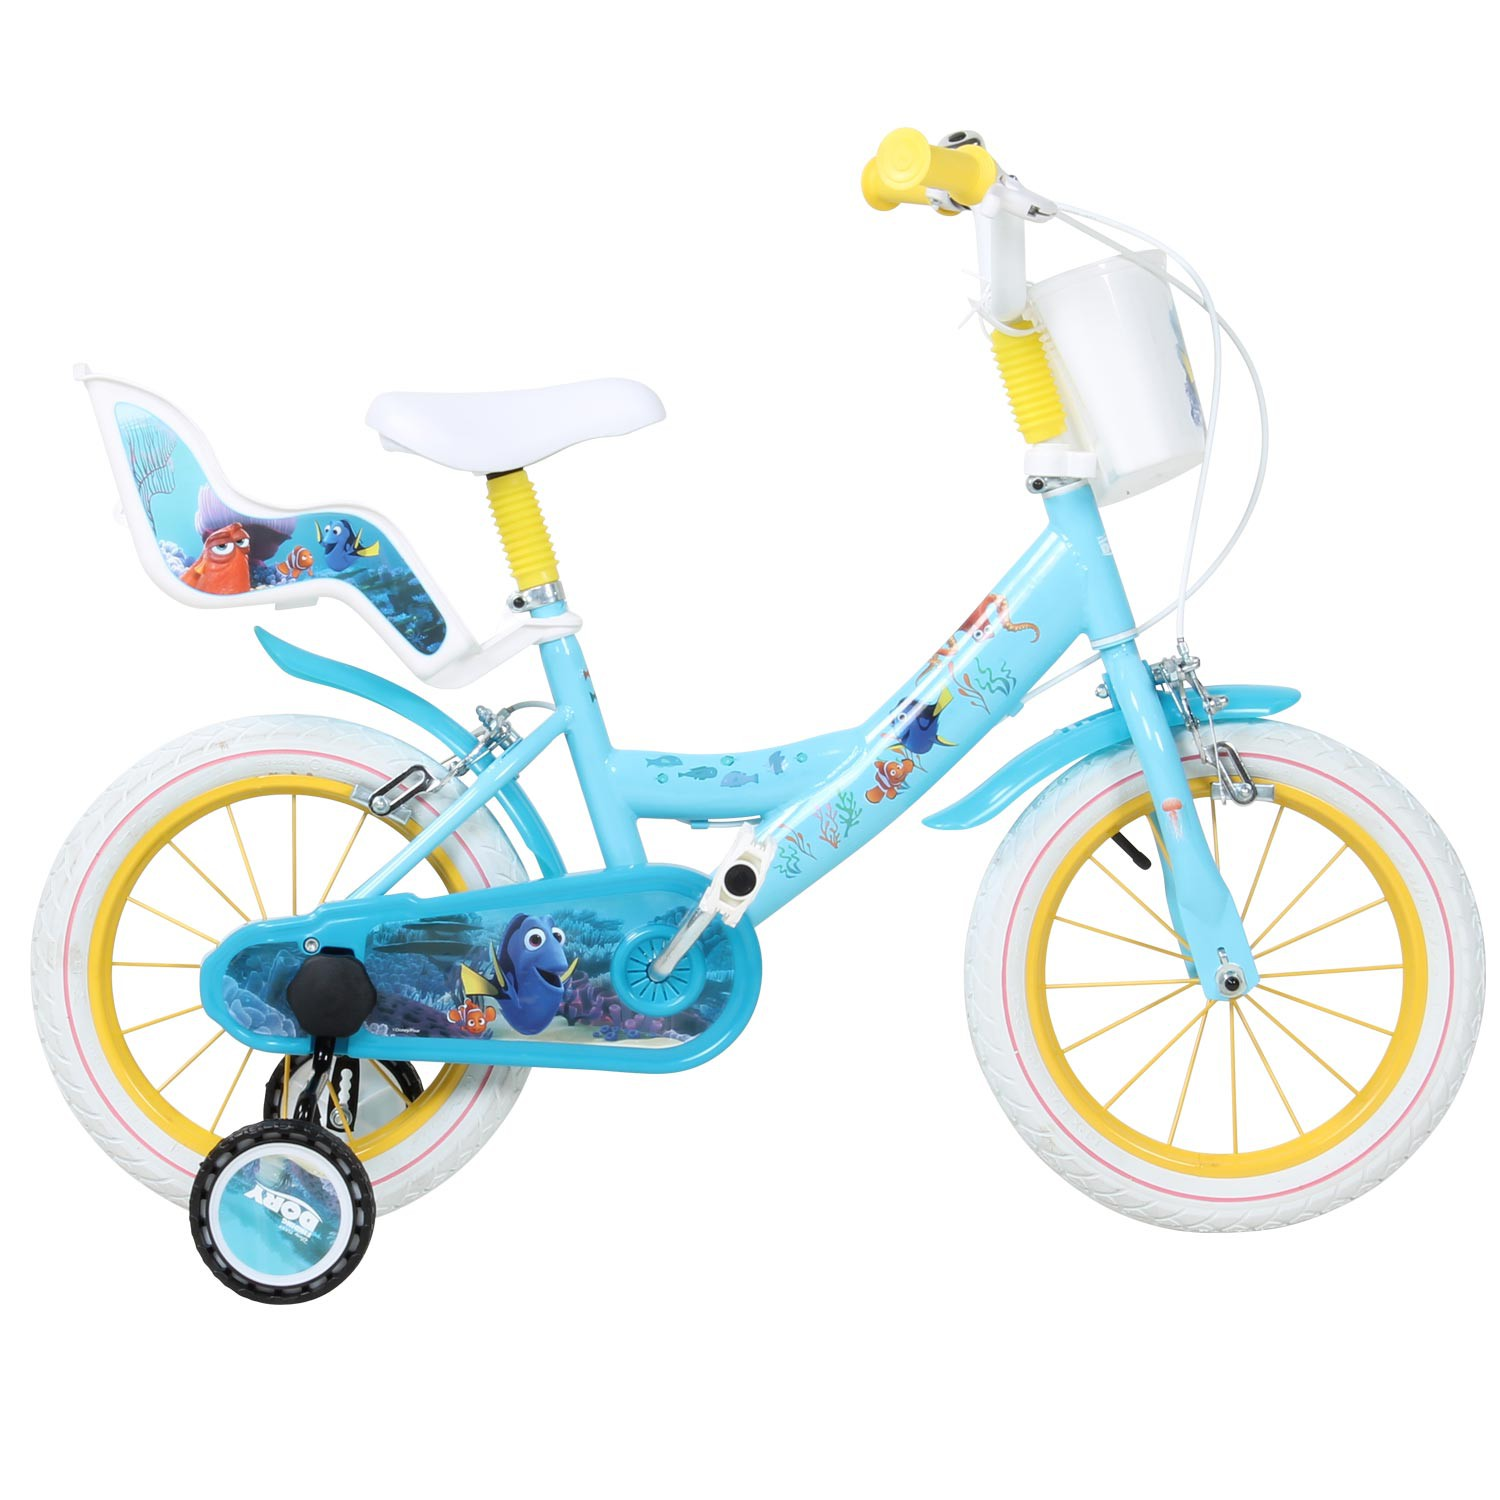 kinderfahrrad 14 zoll findet nemo 2 findet dorie dory. Black Bedroom Furniture Sets. Home Design Ideas